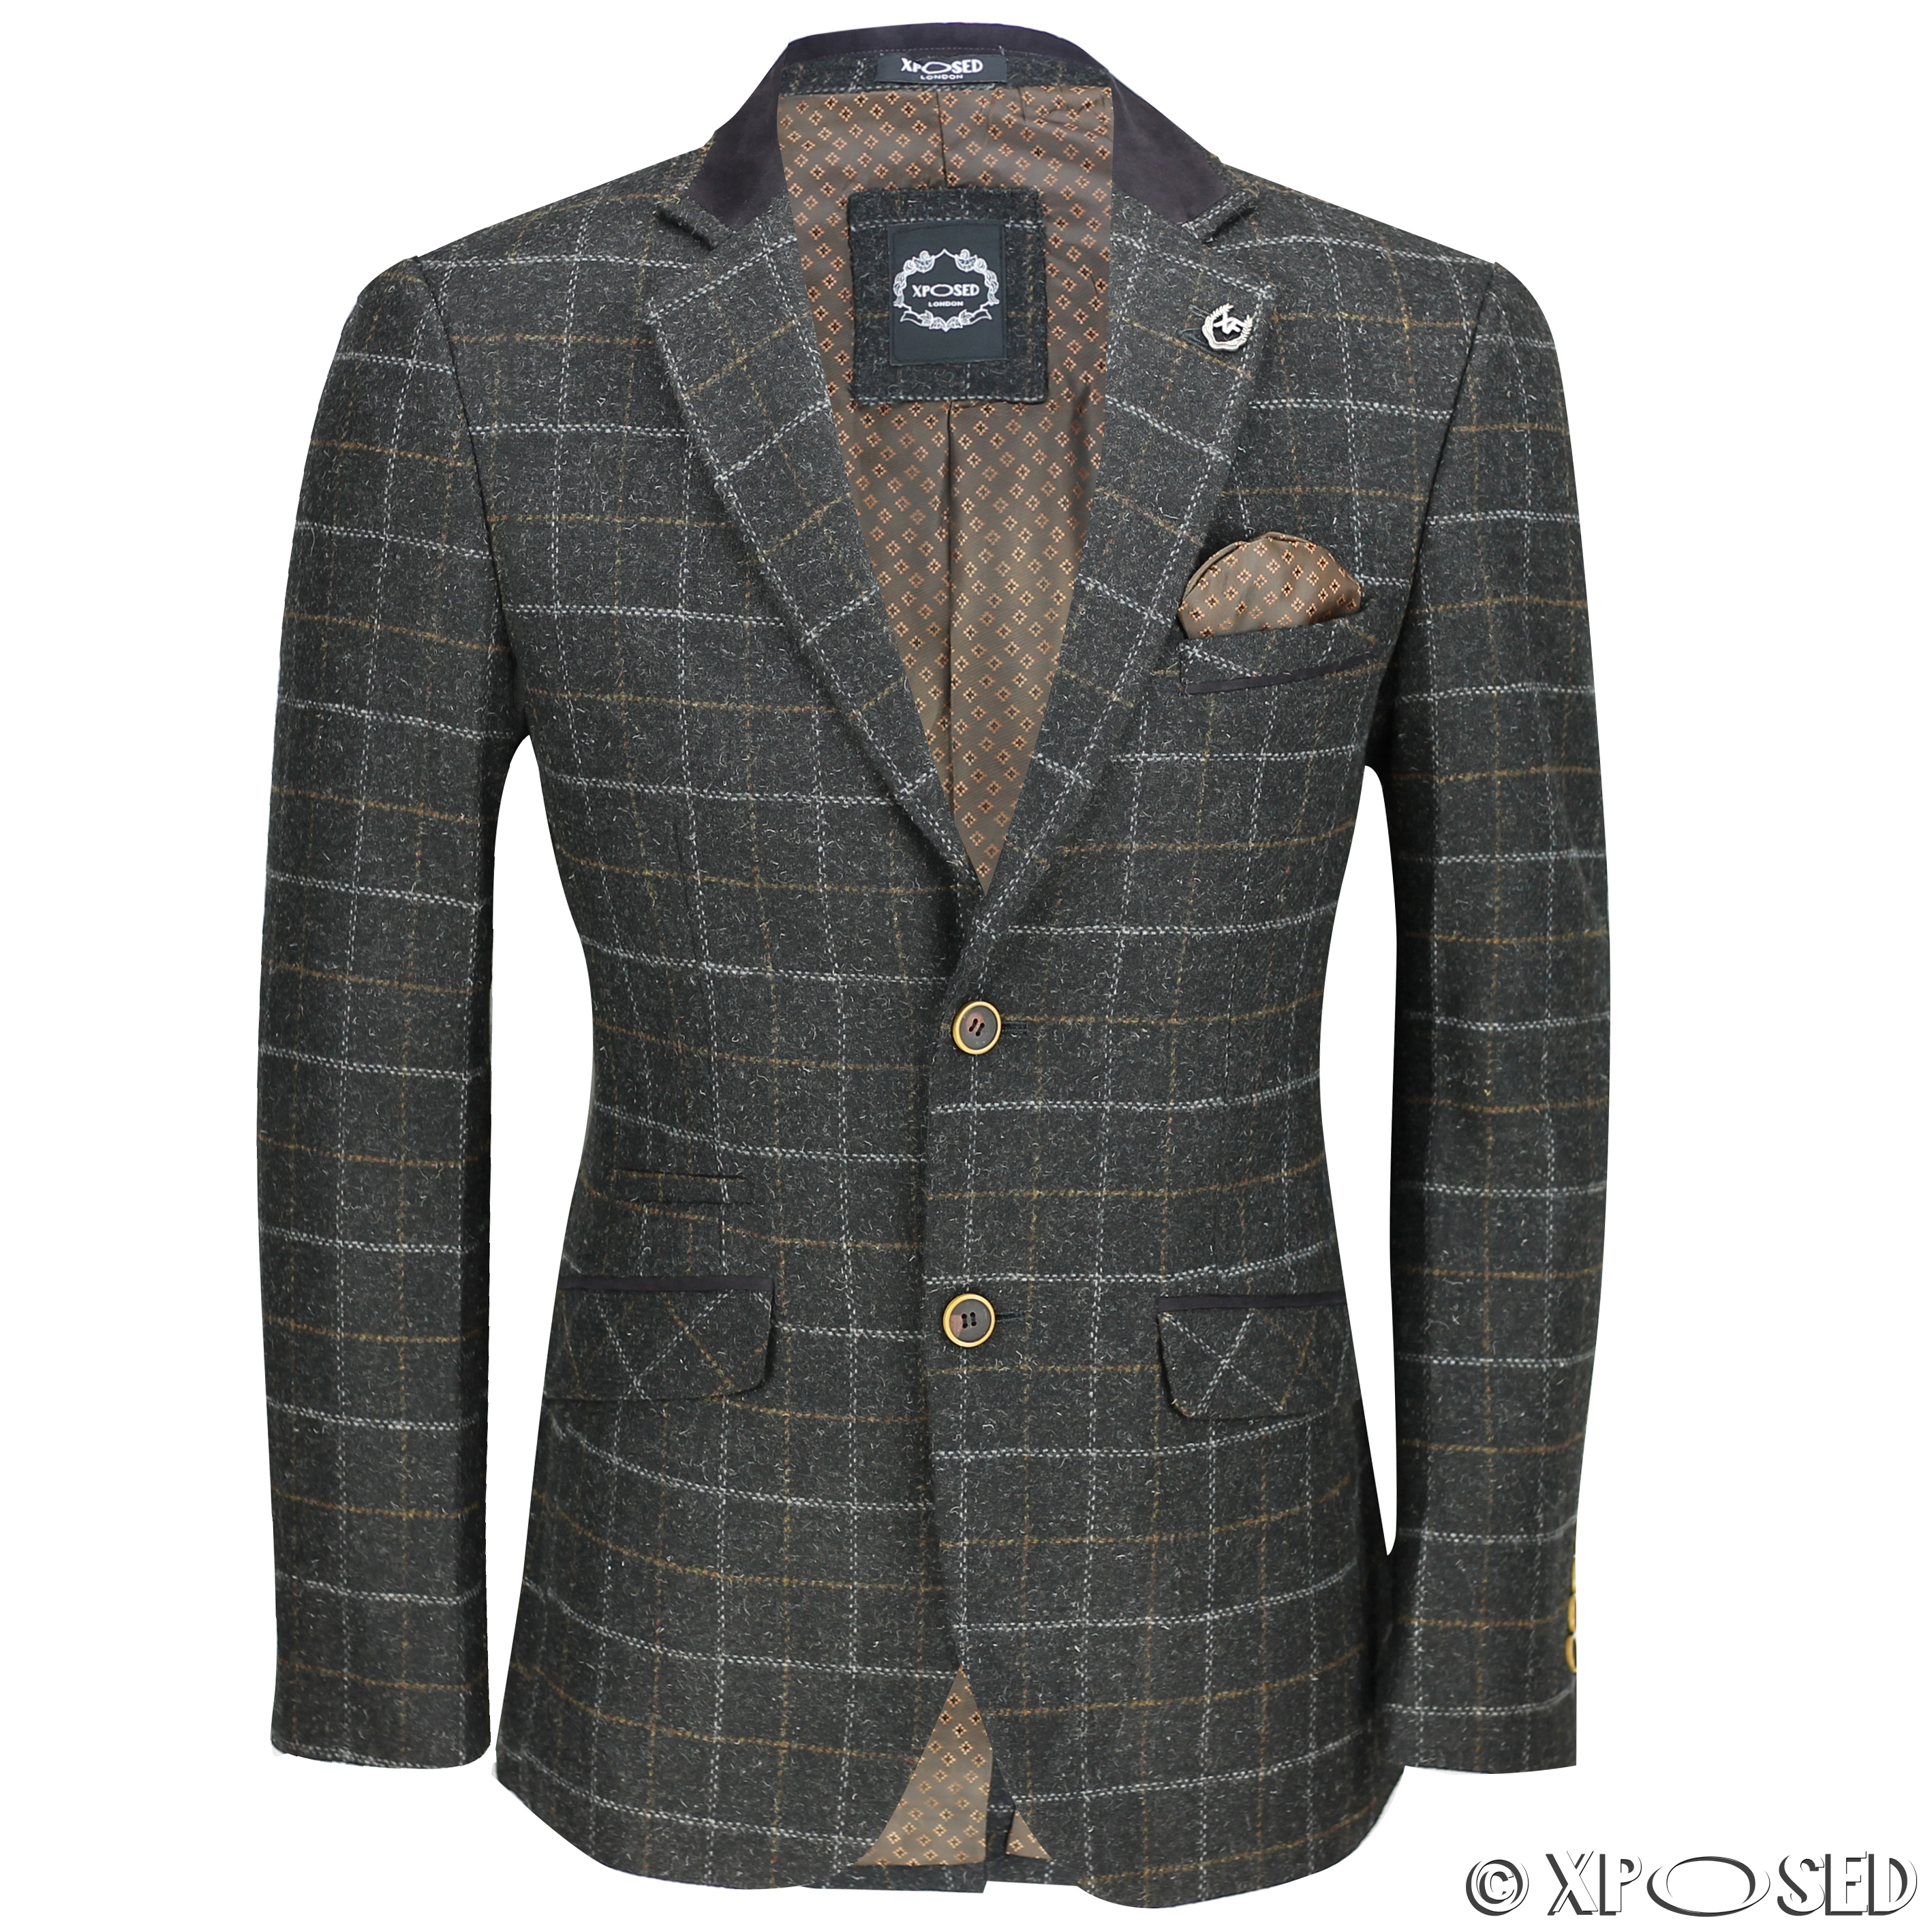 mens vintage tweed herringbone check blazer in grey brown green designer jacket ebay. Black Bedroom Furniture Sets. Home Design Ideas